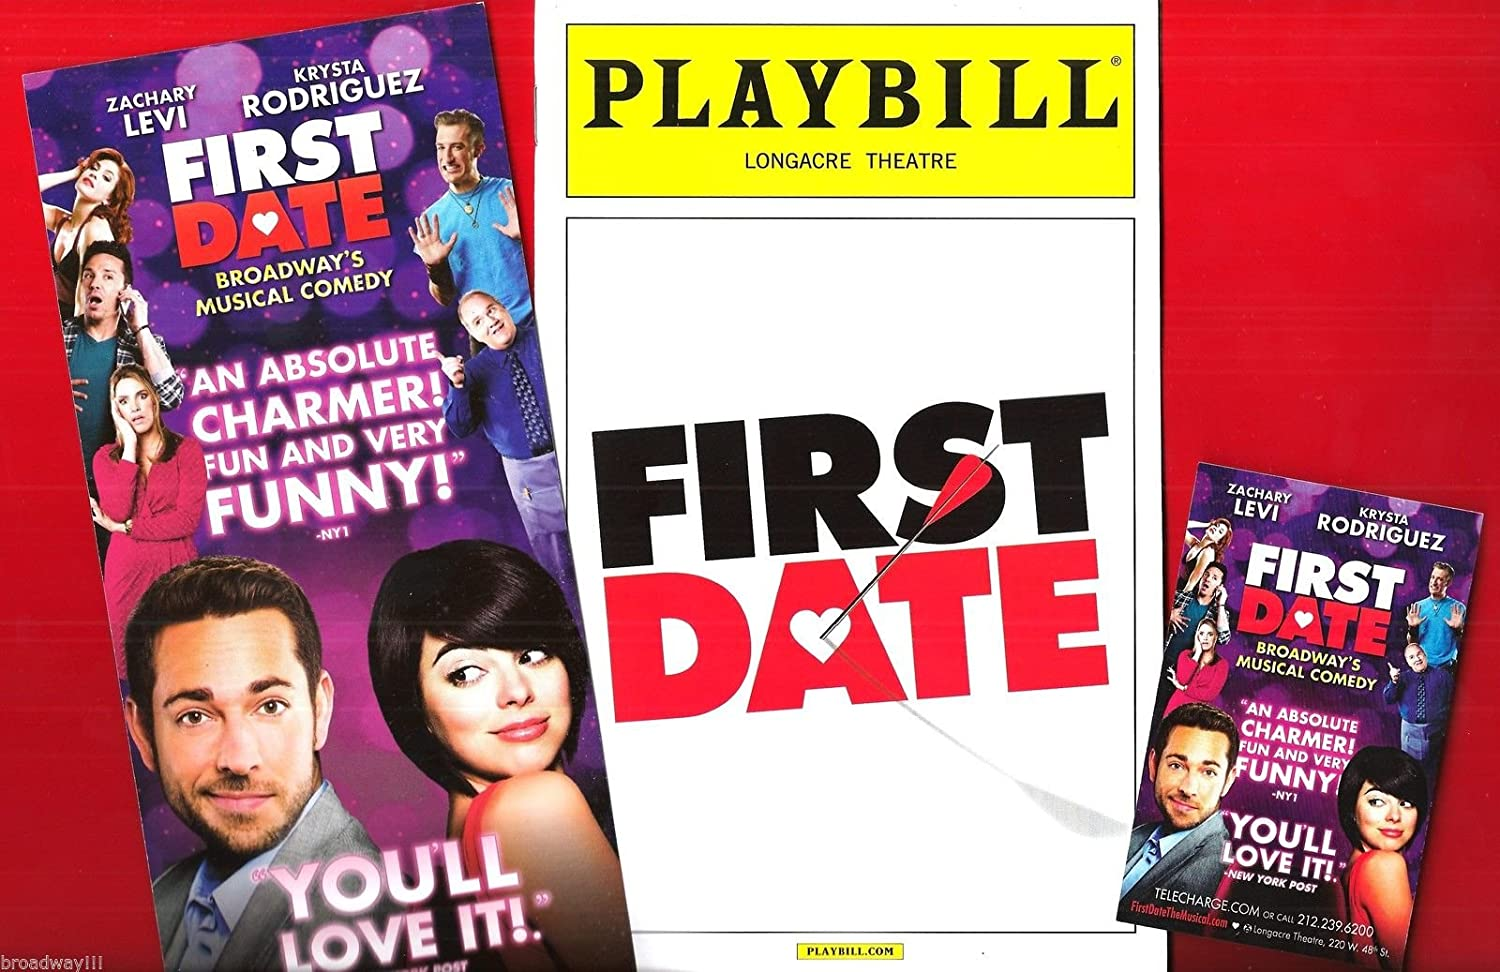 Krysta Rodriguez 'FIRST DATE' Zachary Levi 2013 Broadway Playbill and Flyers